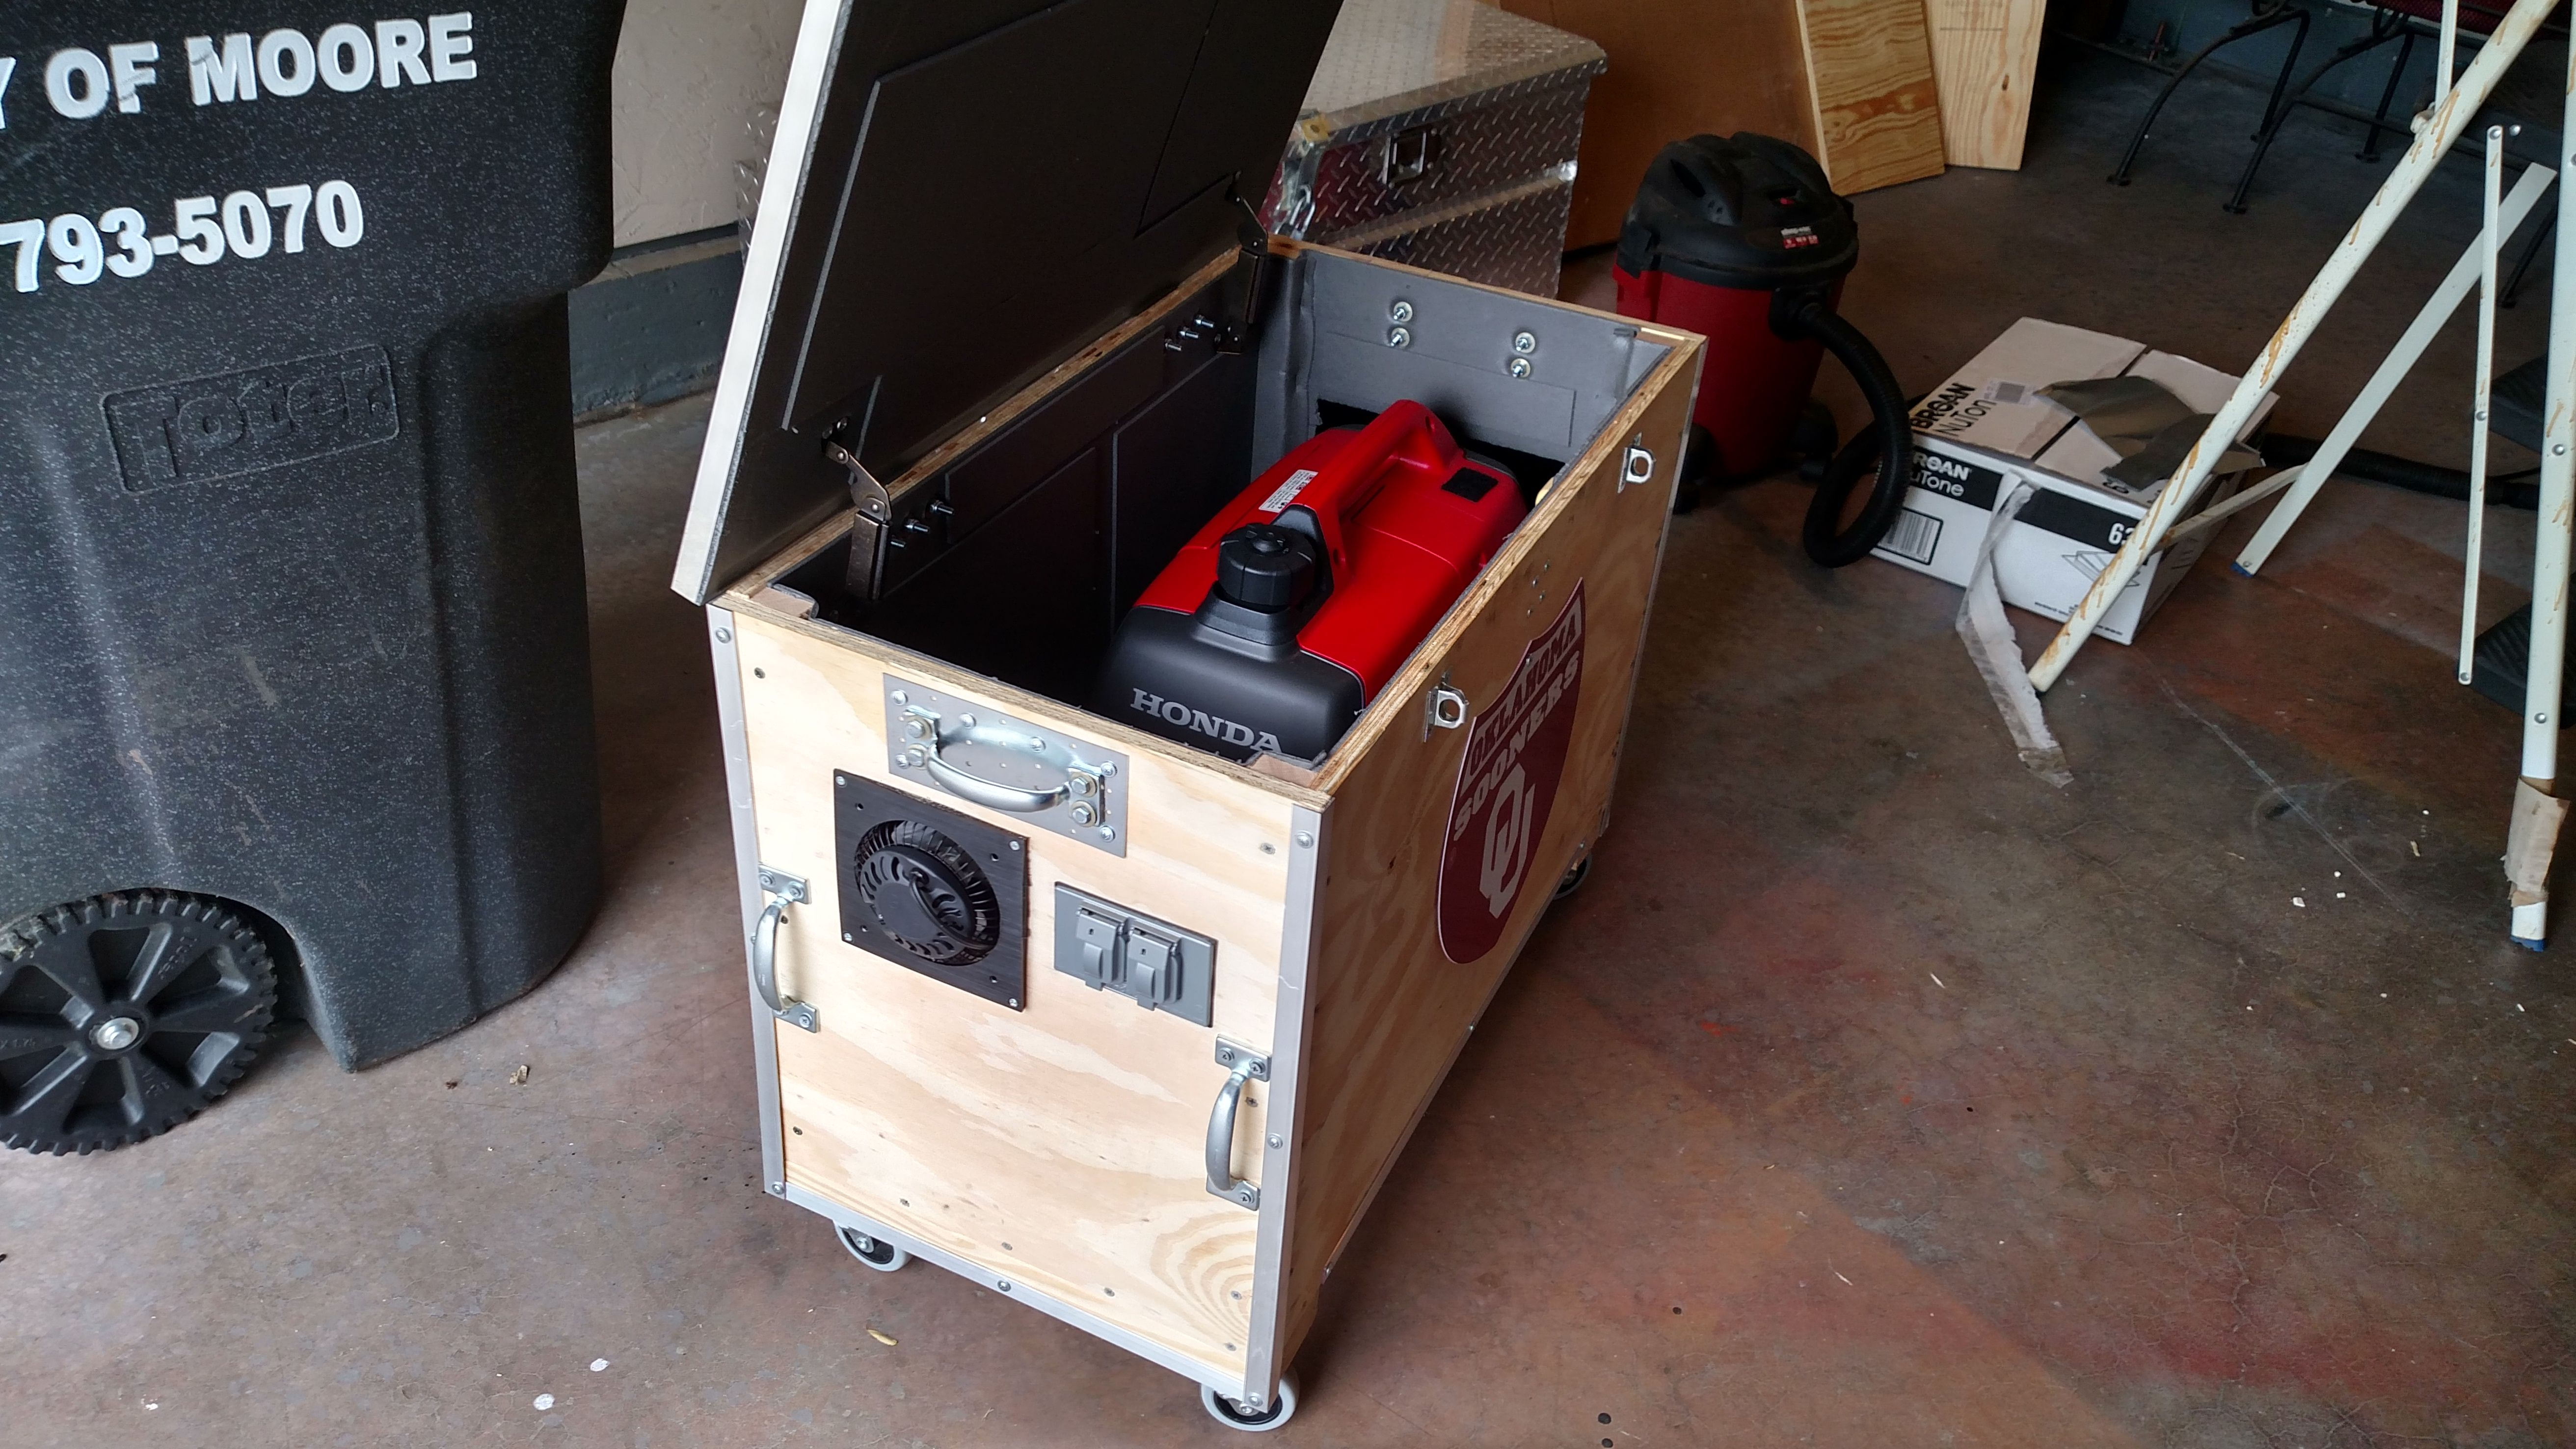 Pin by ChrisDIYerOklahoma on DIY electronics | Generator box